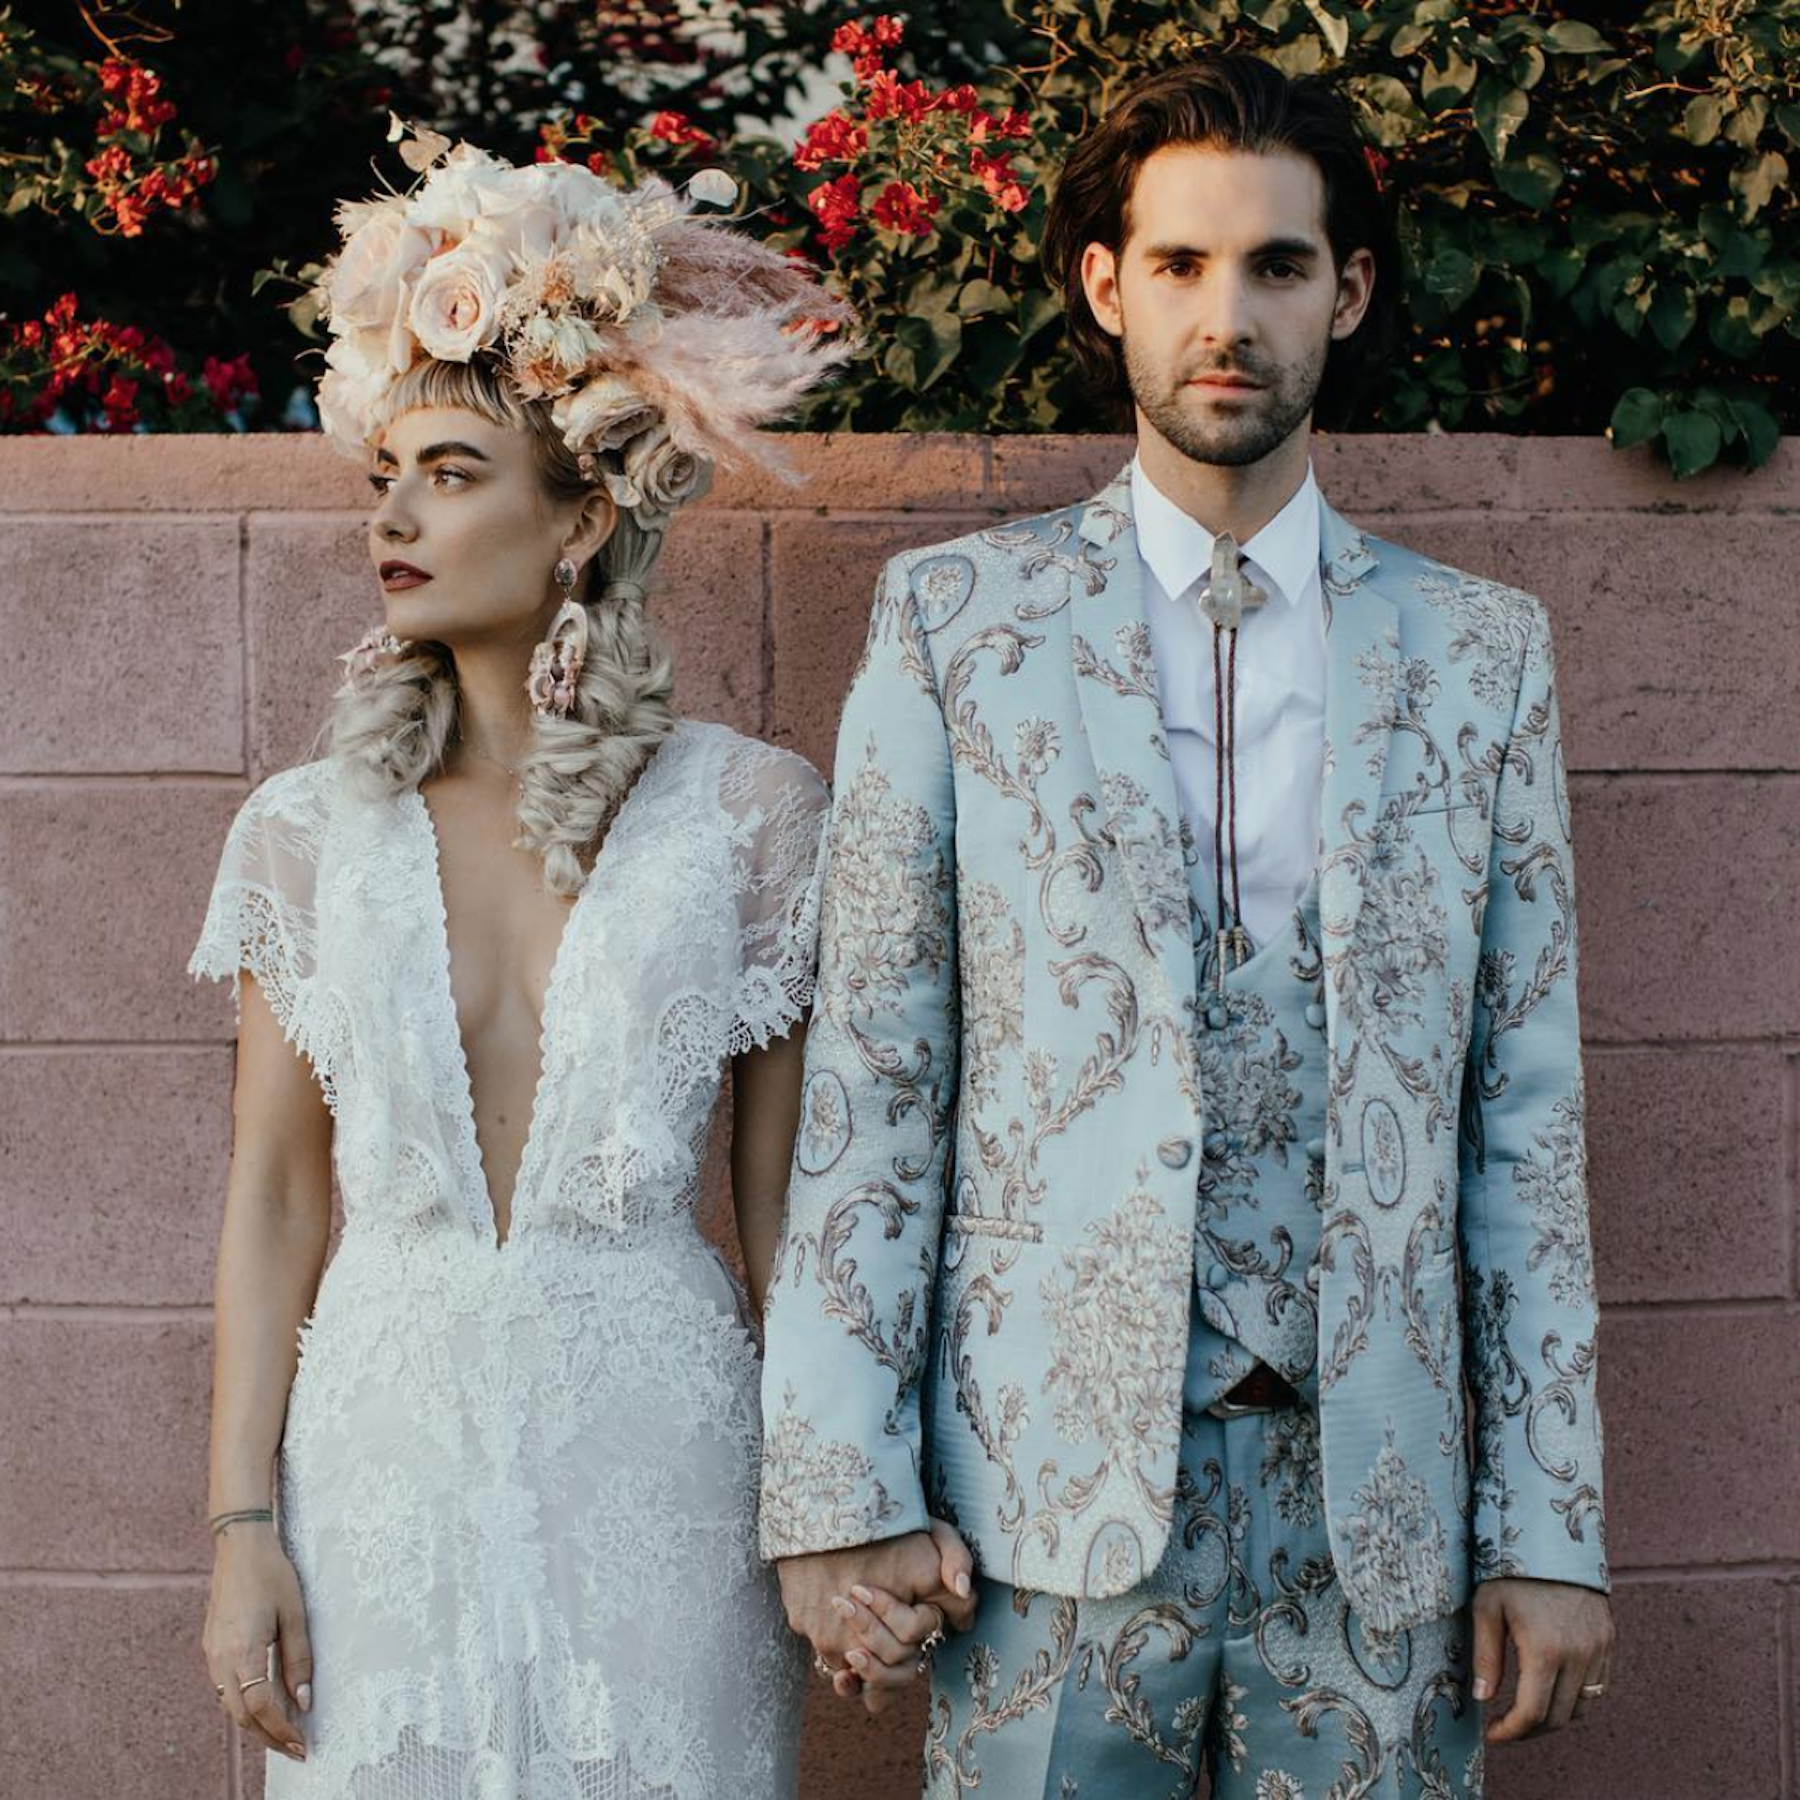 Mad Maven wears Galia Lahav, Mark wears ASOS. Floral headpiece by Tess Made. - Nikia AKA Mad Maven Style and hubby Mark Daoust redefined bridal fashion with bold prints and dramatic headpieces.Photo by Sara K. Byrne and Phil Chester.